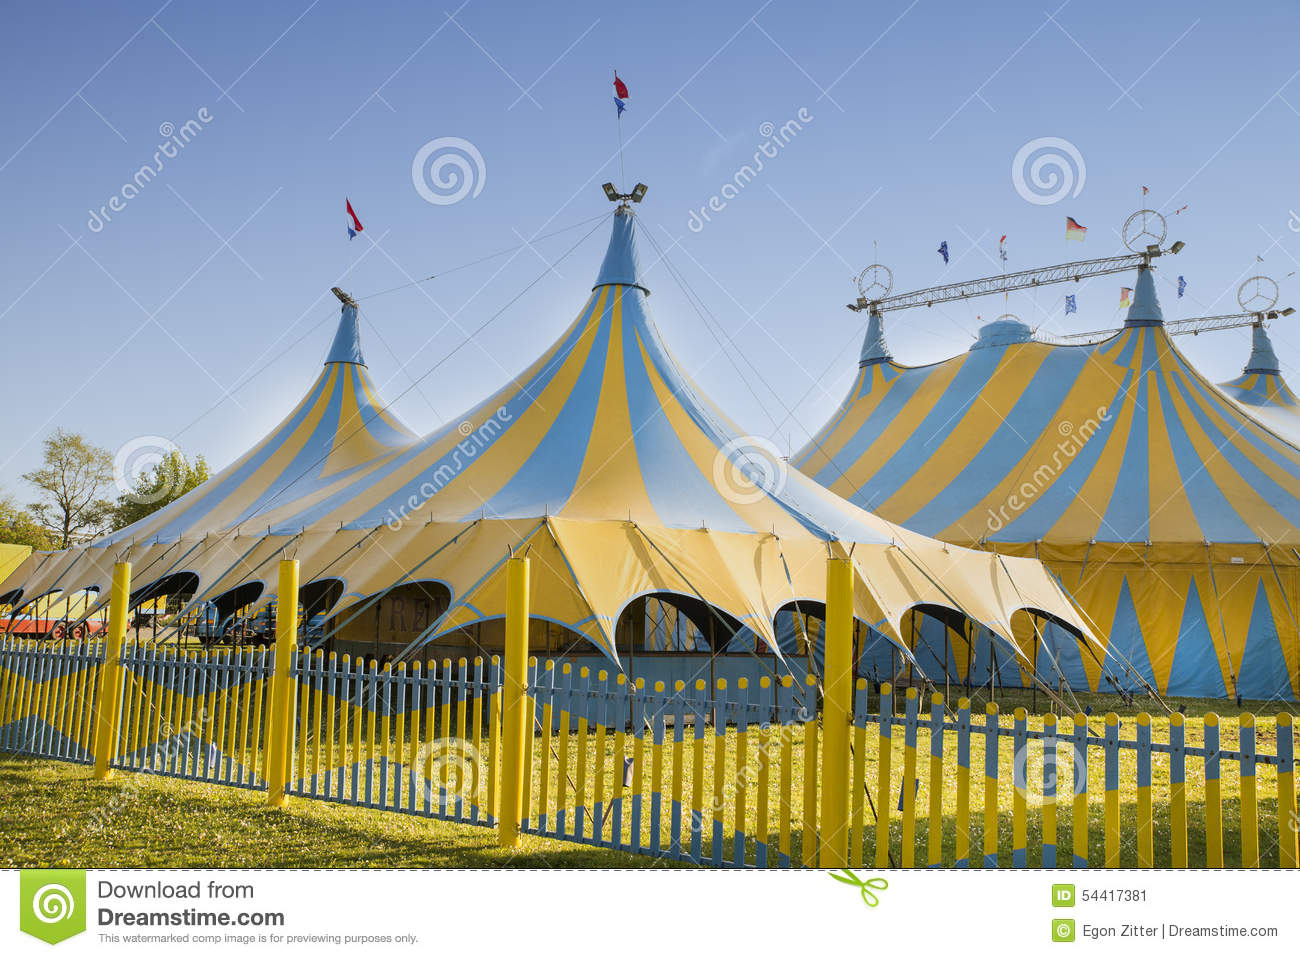 Circus tents & Circus tents stock image. Image of funny blue outdoor - 54417381